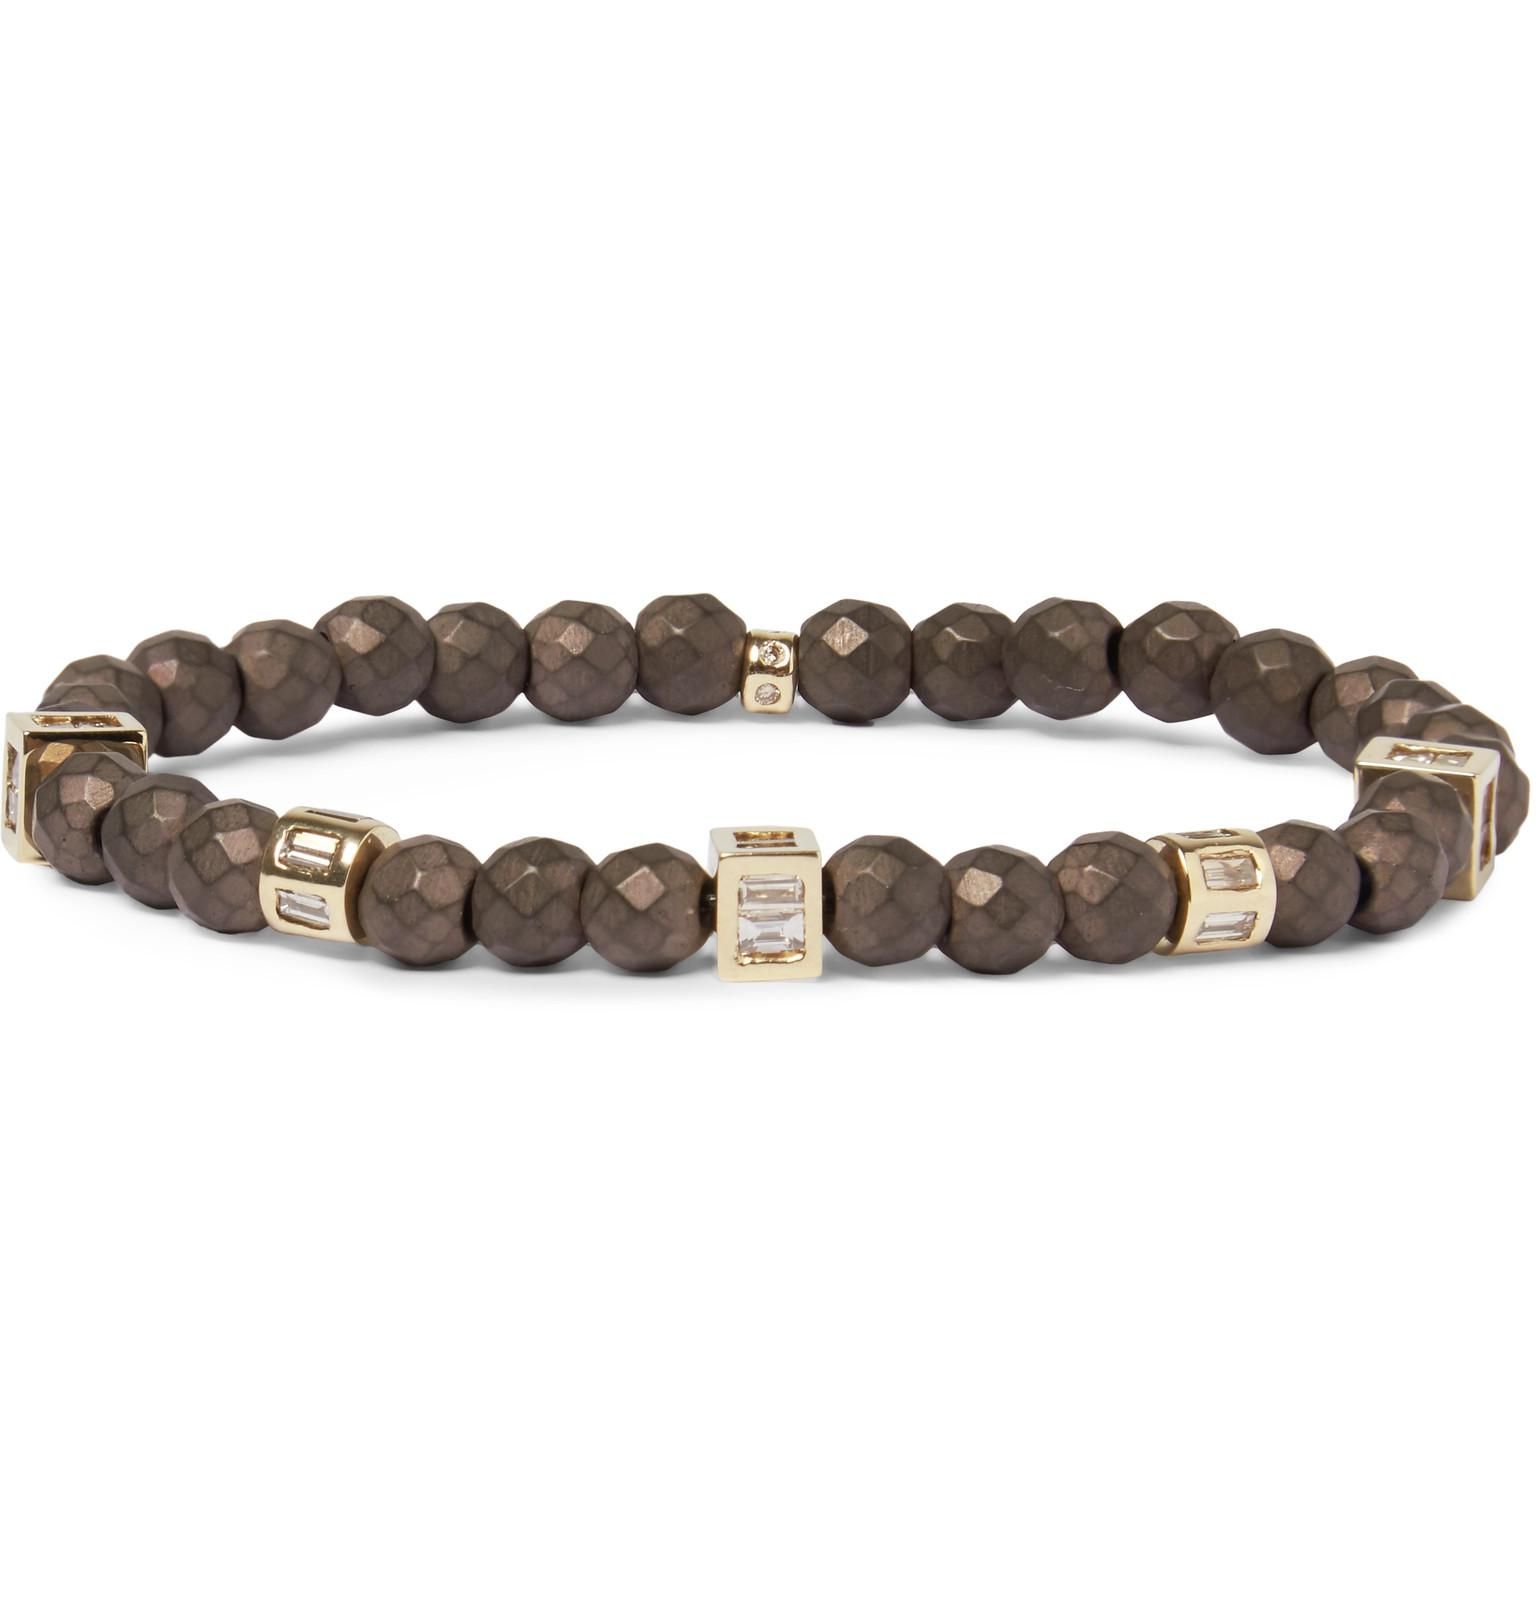 Luis Morais Beaded Wood, 14-karat Gold And Diamond Bracelet - Black